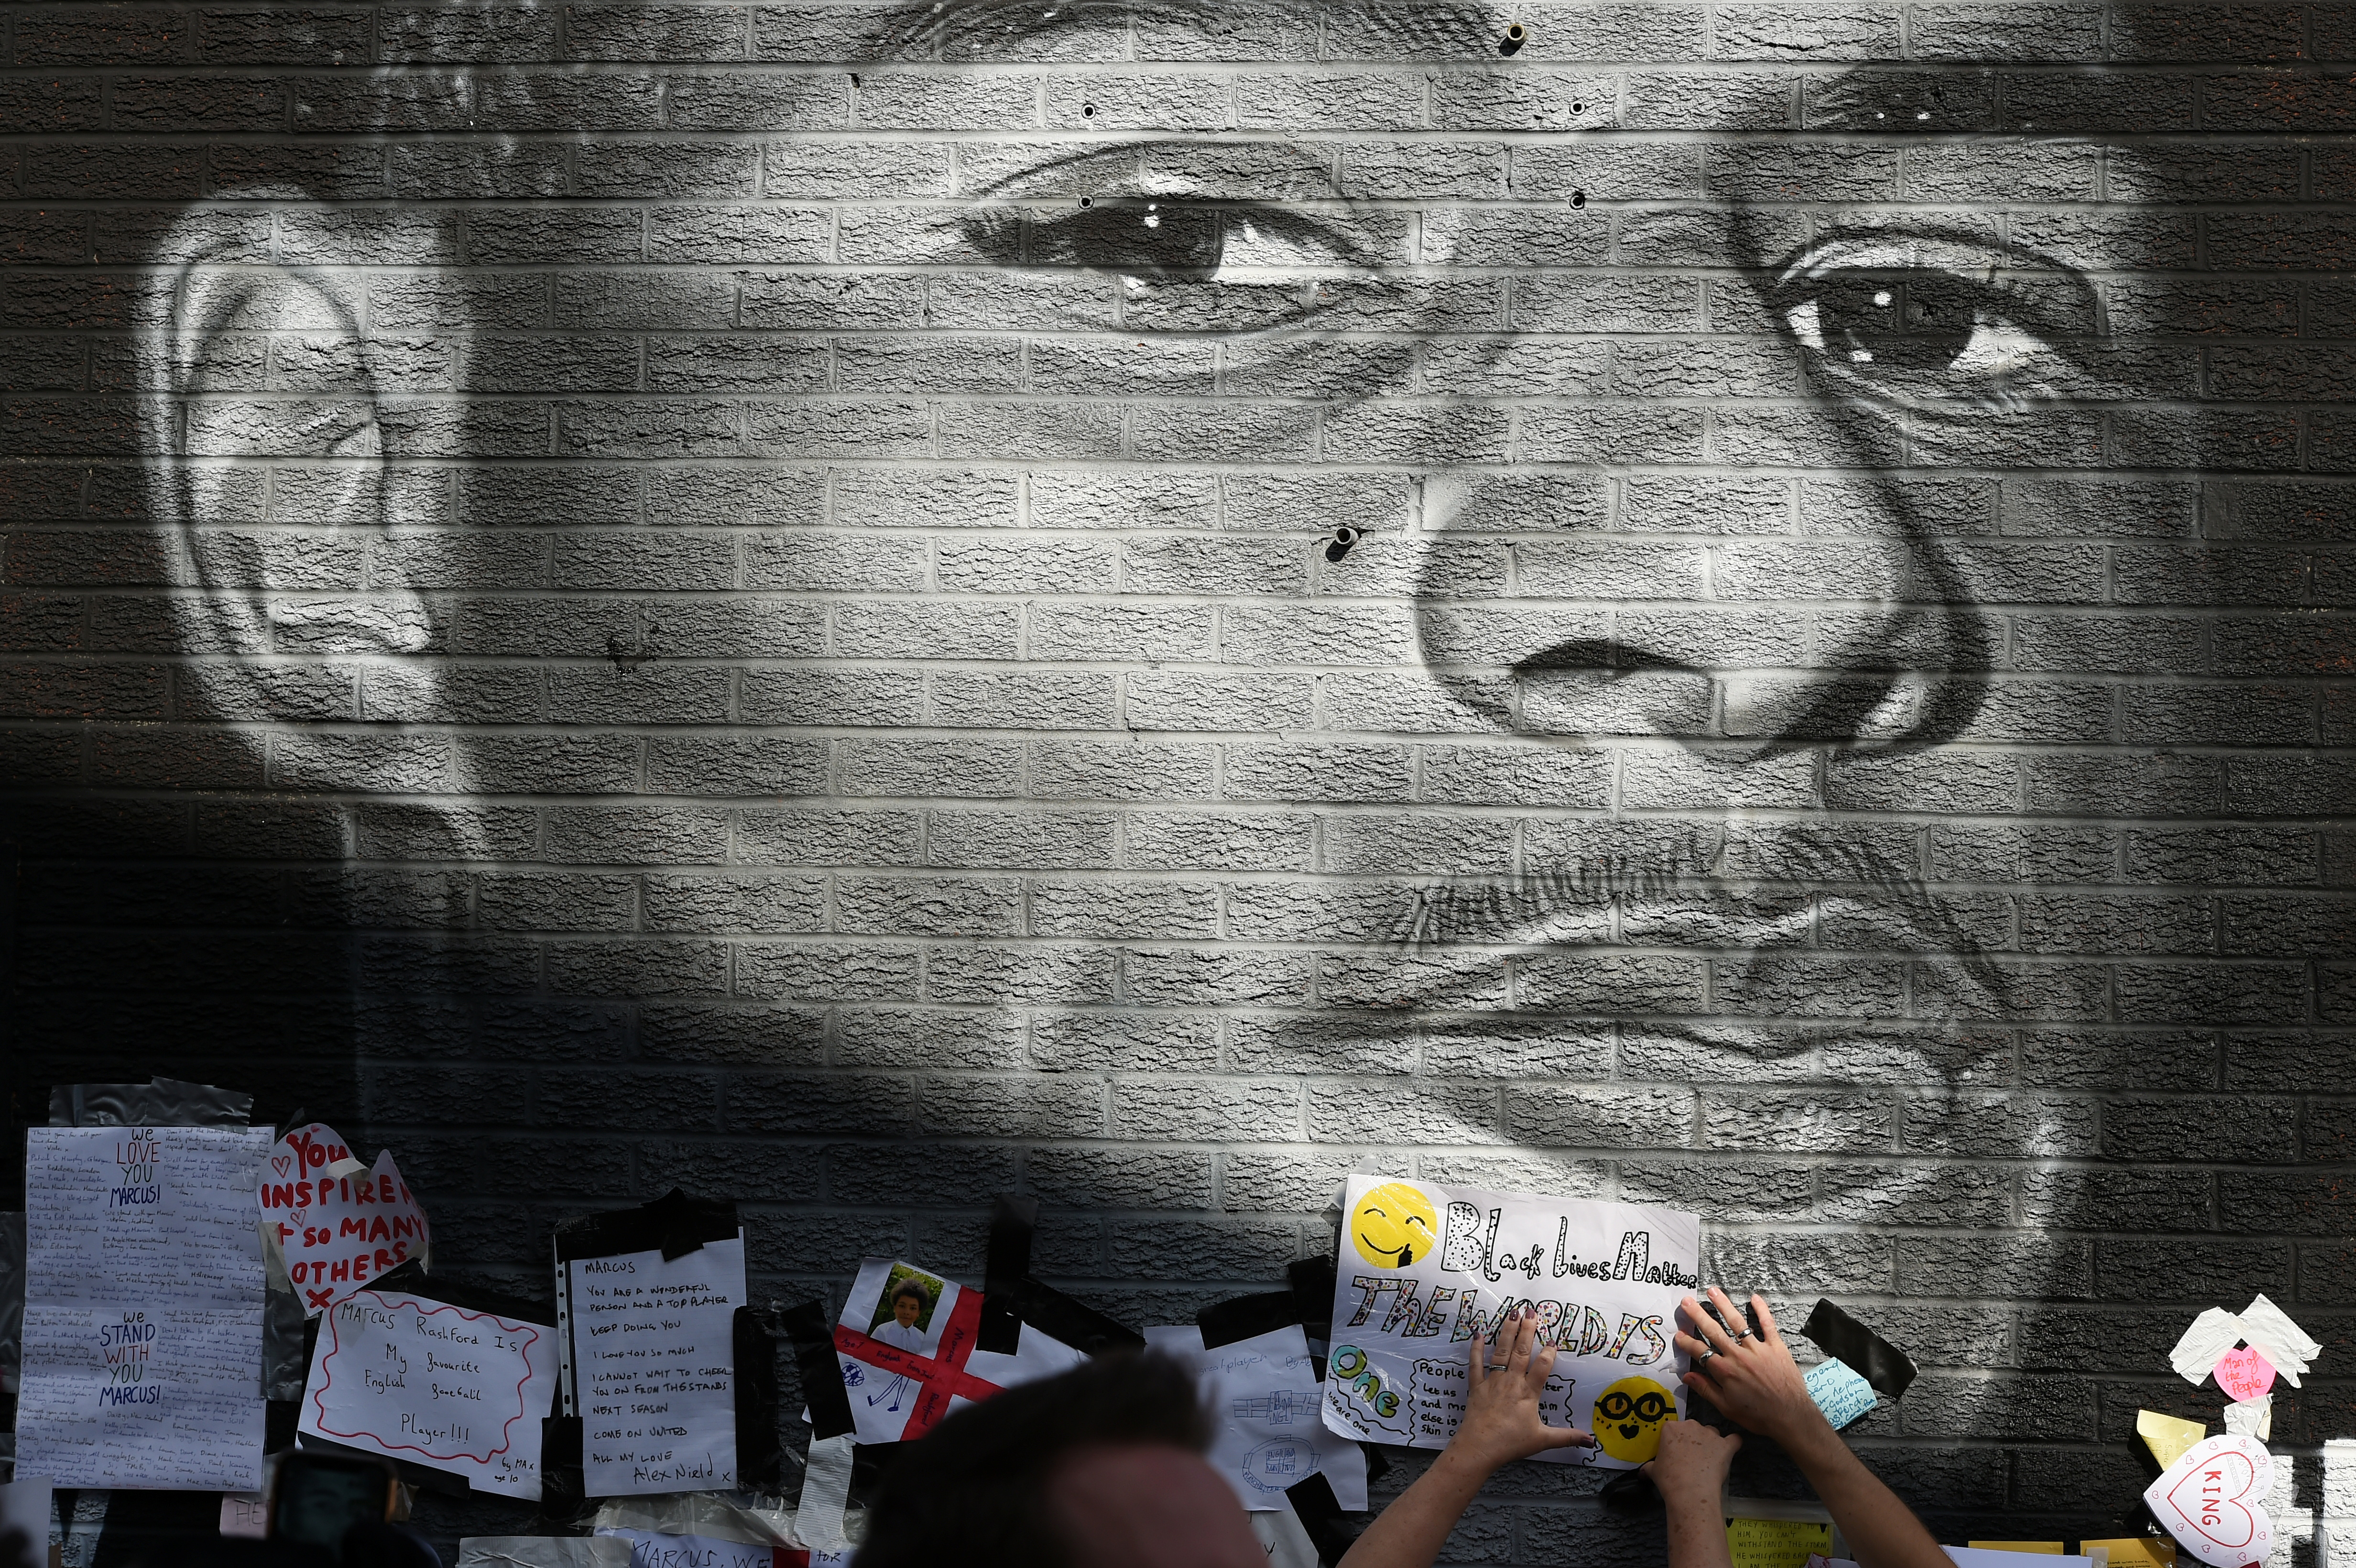 Stand Up to Racism Demonstration at the Marcus Rashford mural after it was defaced following the Euro 2020 Final between Italy and England - Withington, Manchester, Britain - July 13, 2021 People attach a message of support on the Marcus Rashford mural after it was defaced following the Euro 2020 Final between Italy and England REUTERS/Peter Powell/File Photo